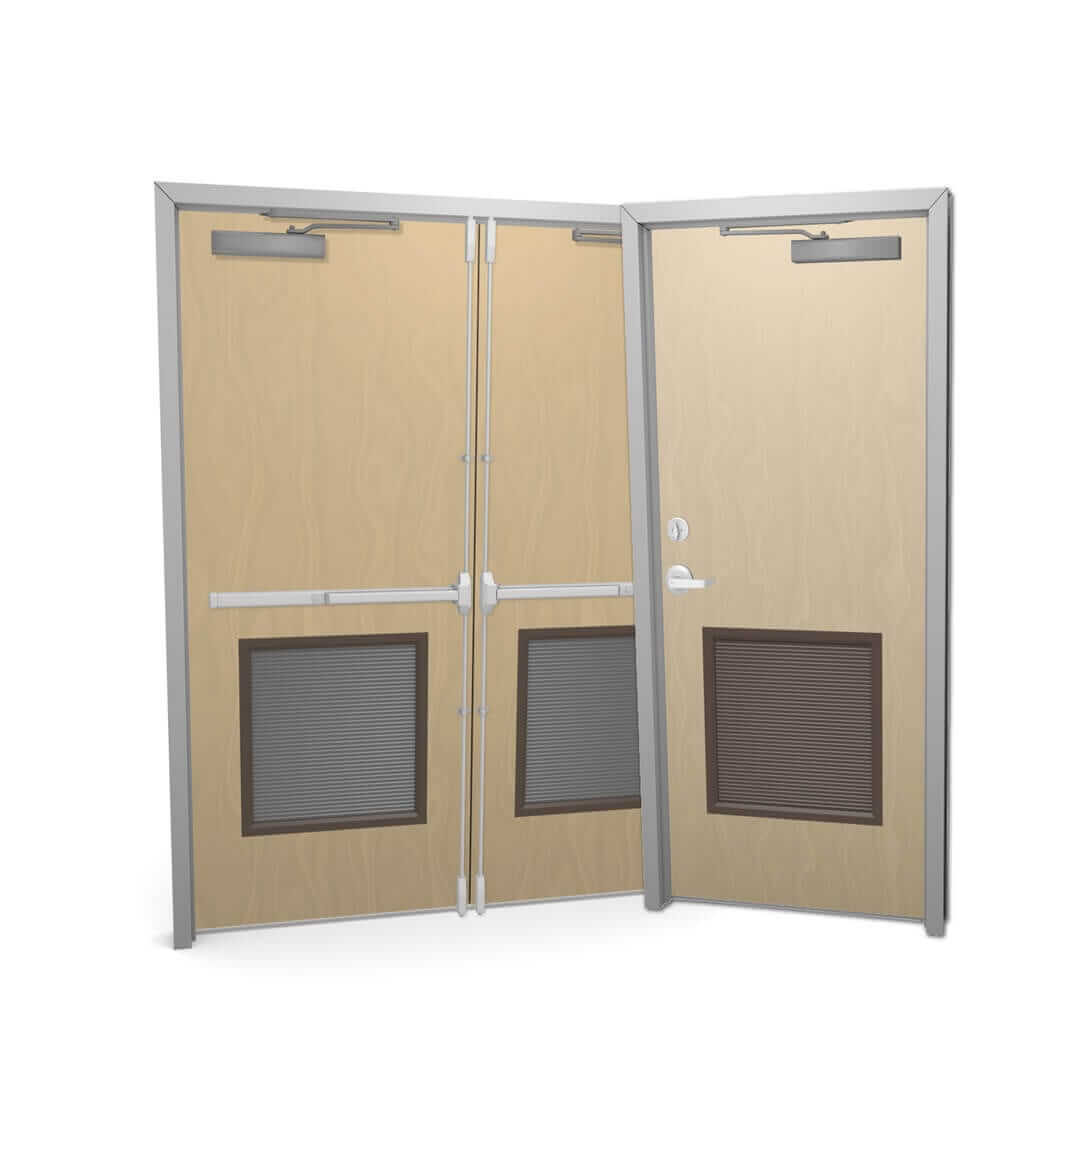 commercial exterior double doors. Single And Double Commercial Wood Doors With Louver Exterior I